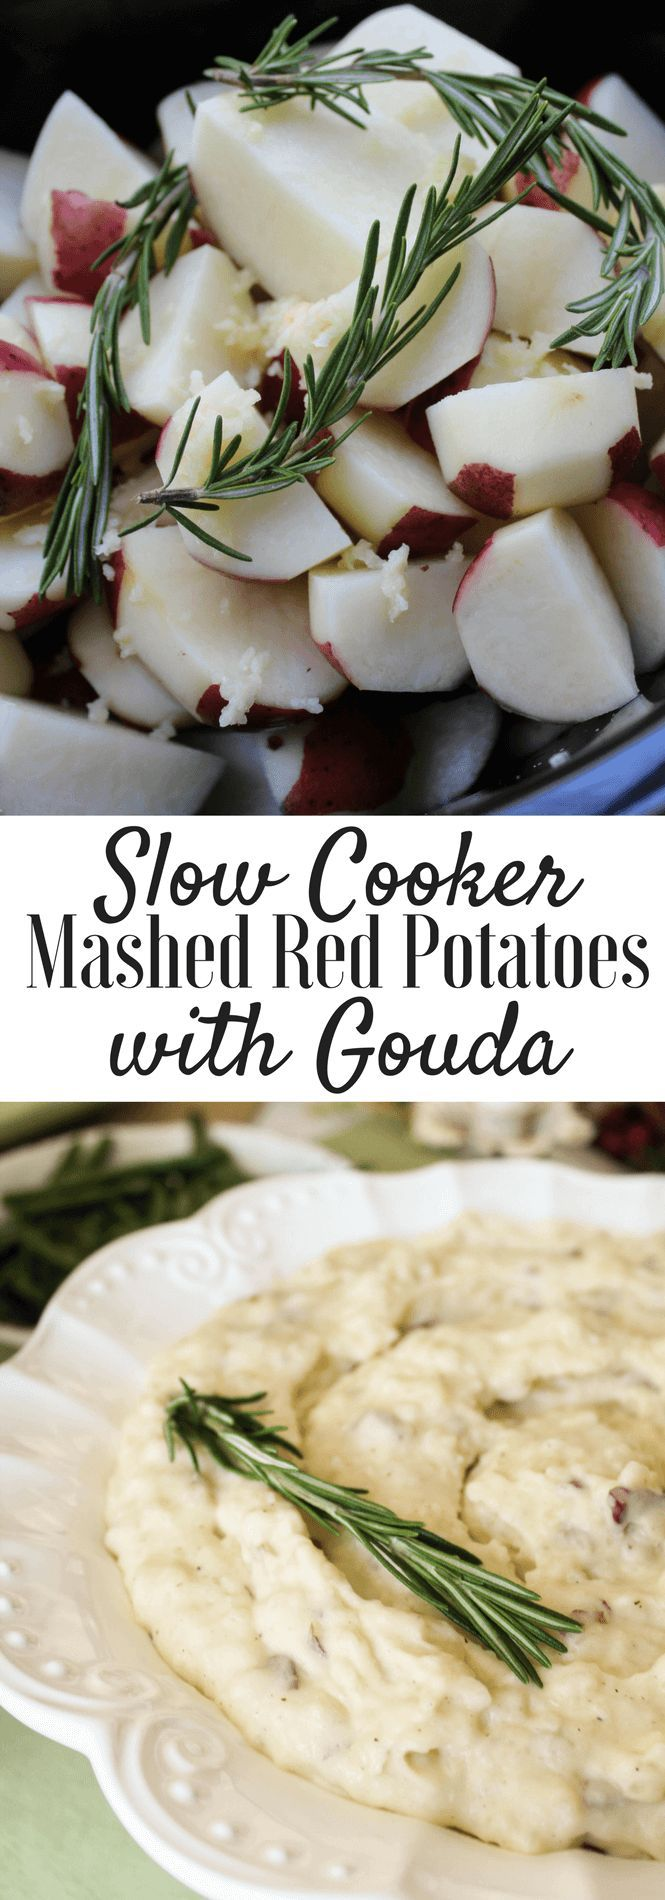 Msg 4 21+ Crockpot Holiday Mashed Red Potatoes with Gouda paired with @woodbridgewines #ad #TurkeyDayTips